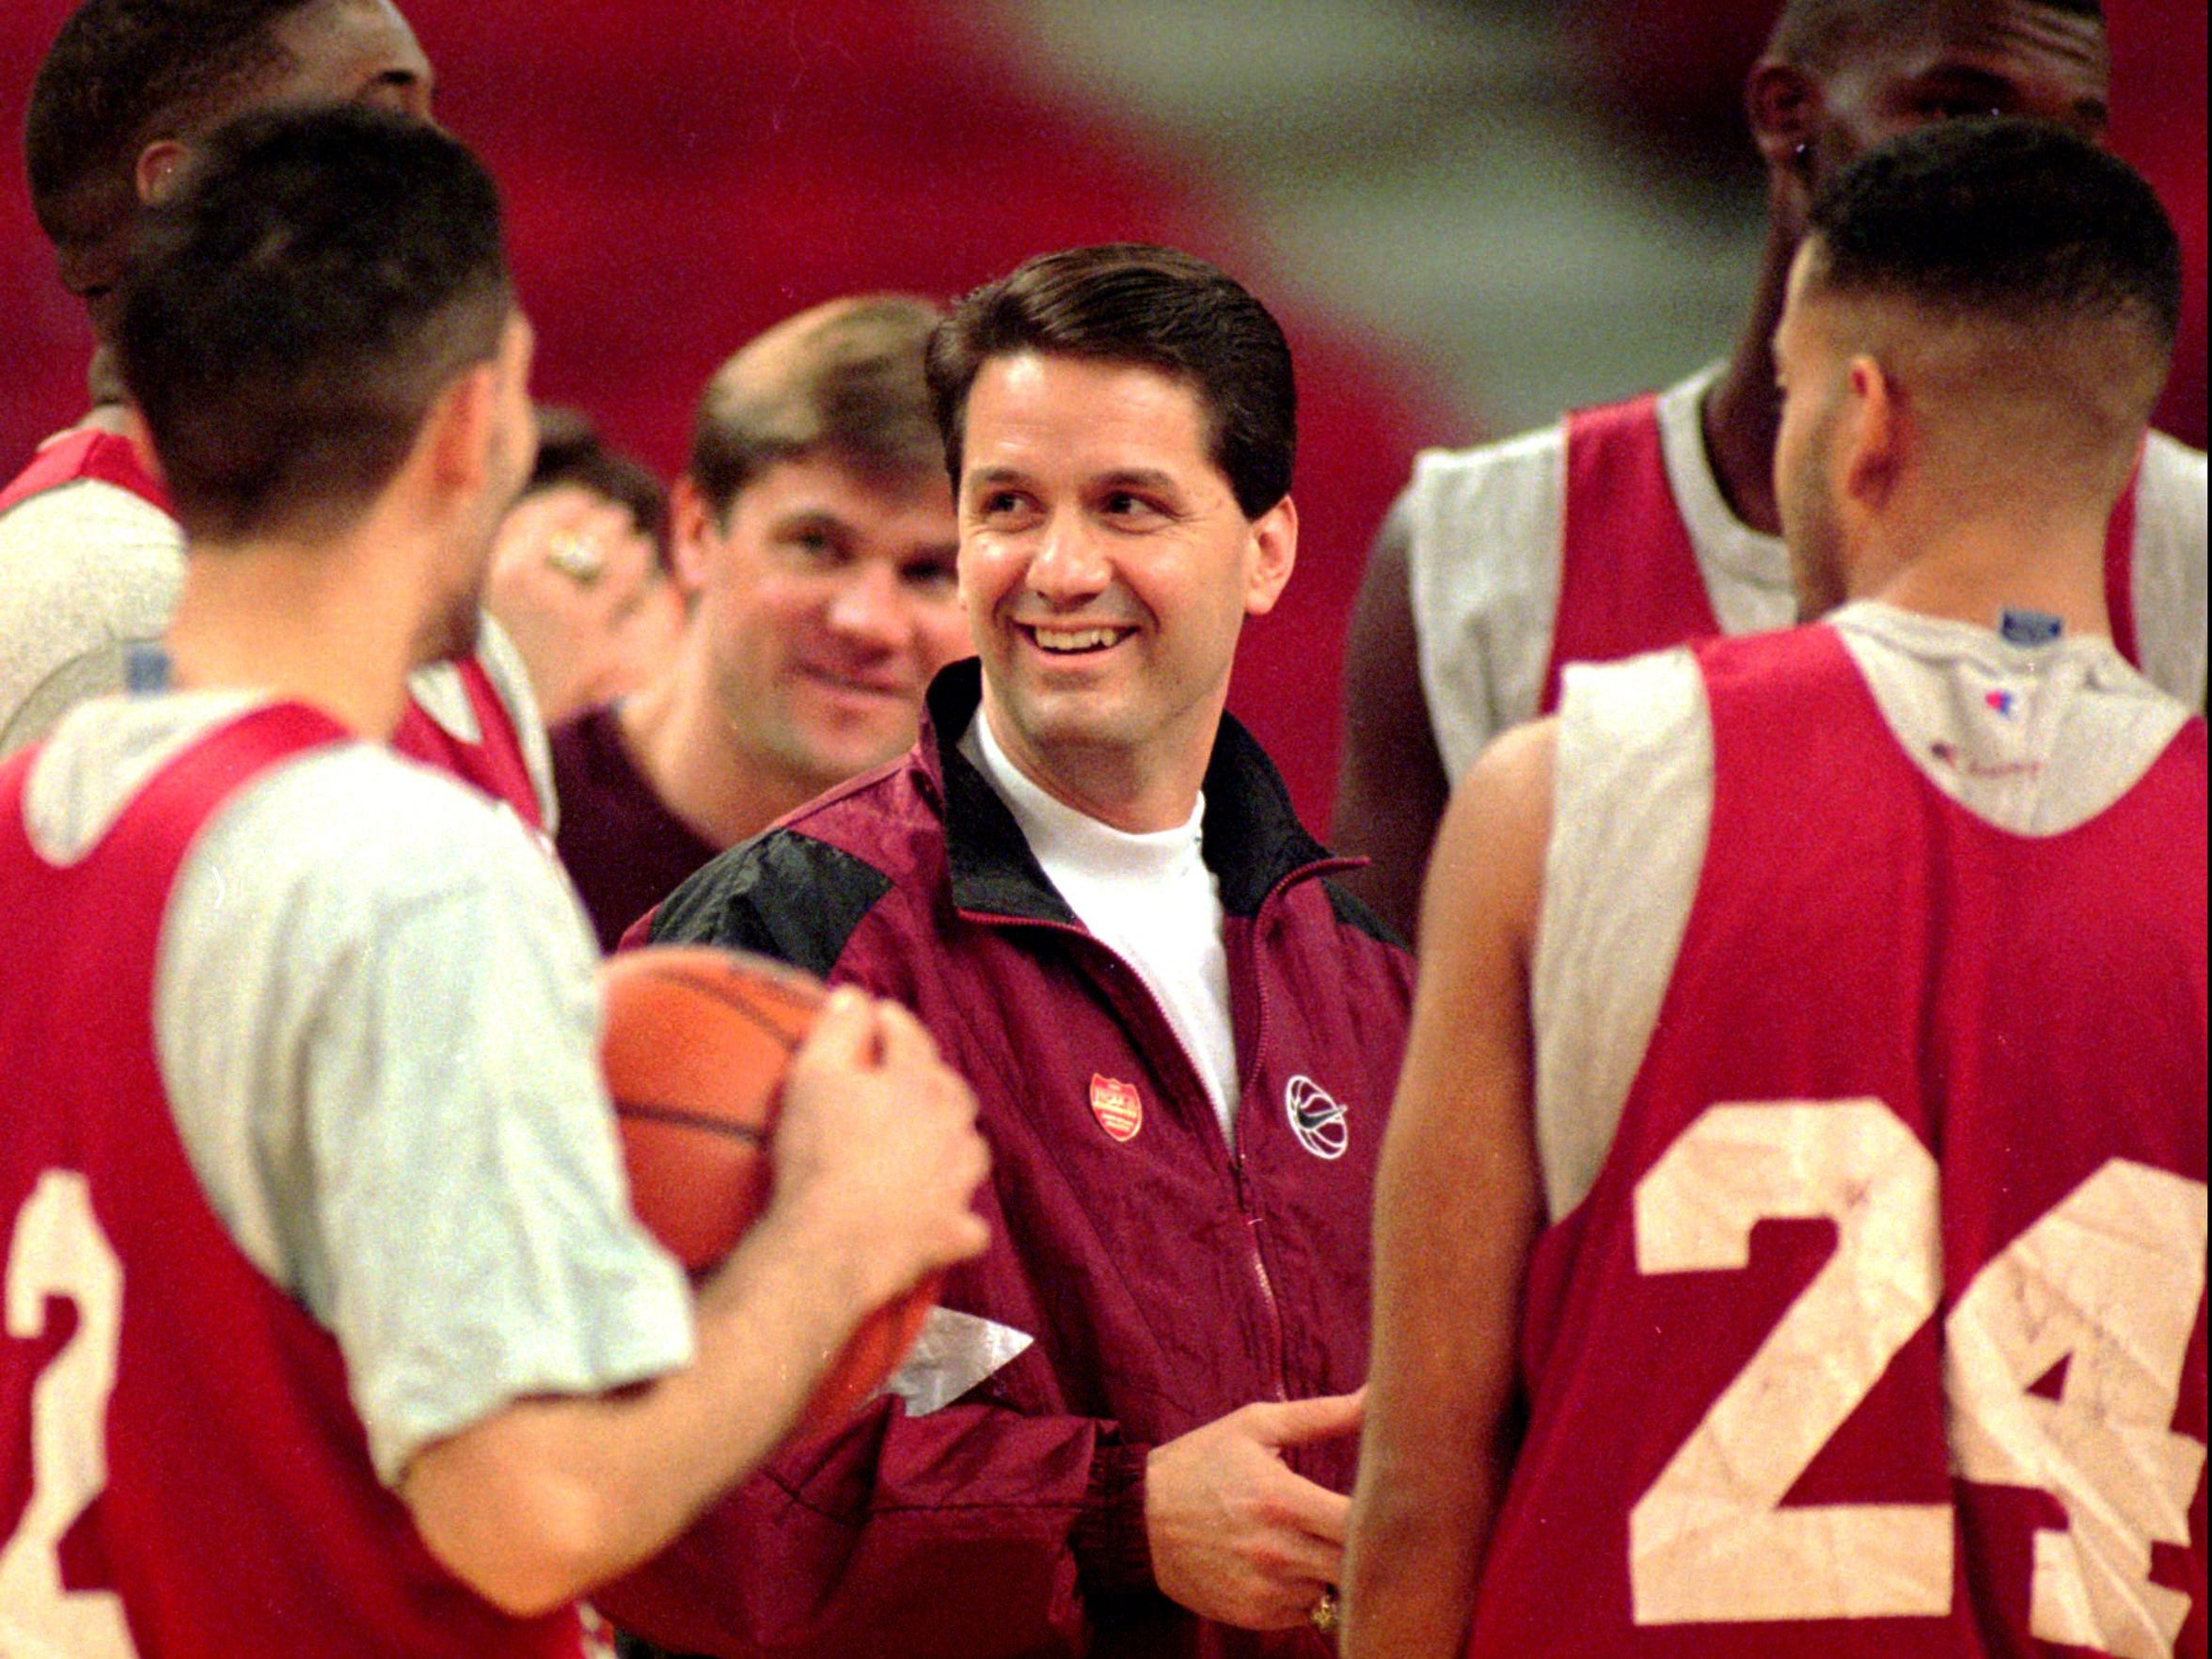 John Calipari coached UMass to the Final Four in 1996 before he made a run to the NBA, agreeing to become the coach of the New Jersey Nets.